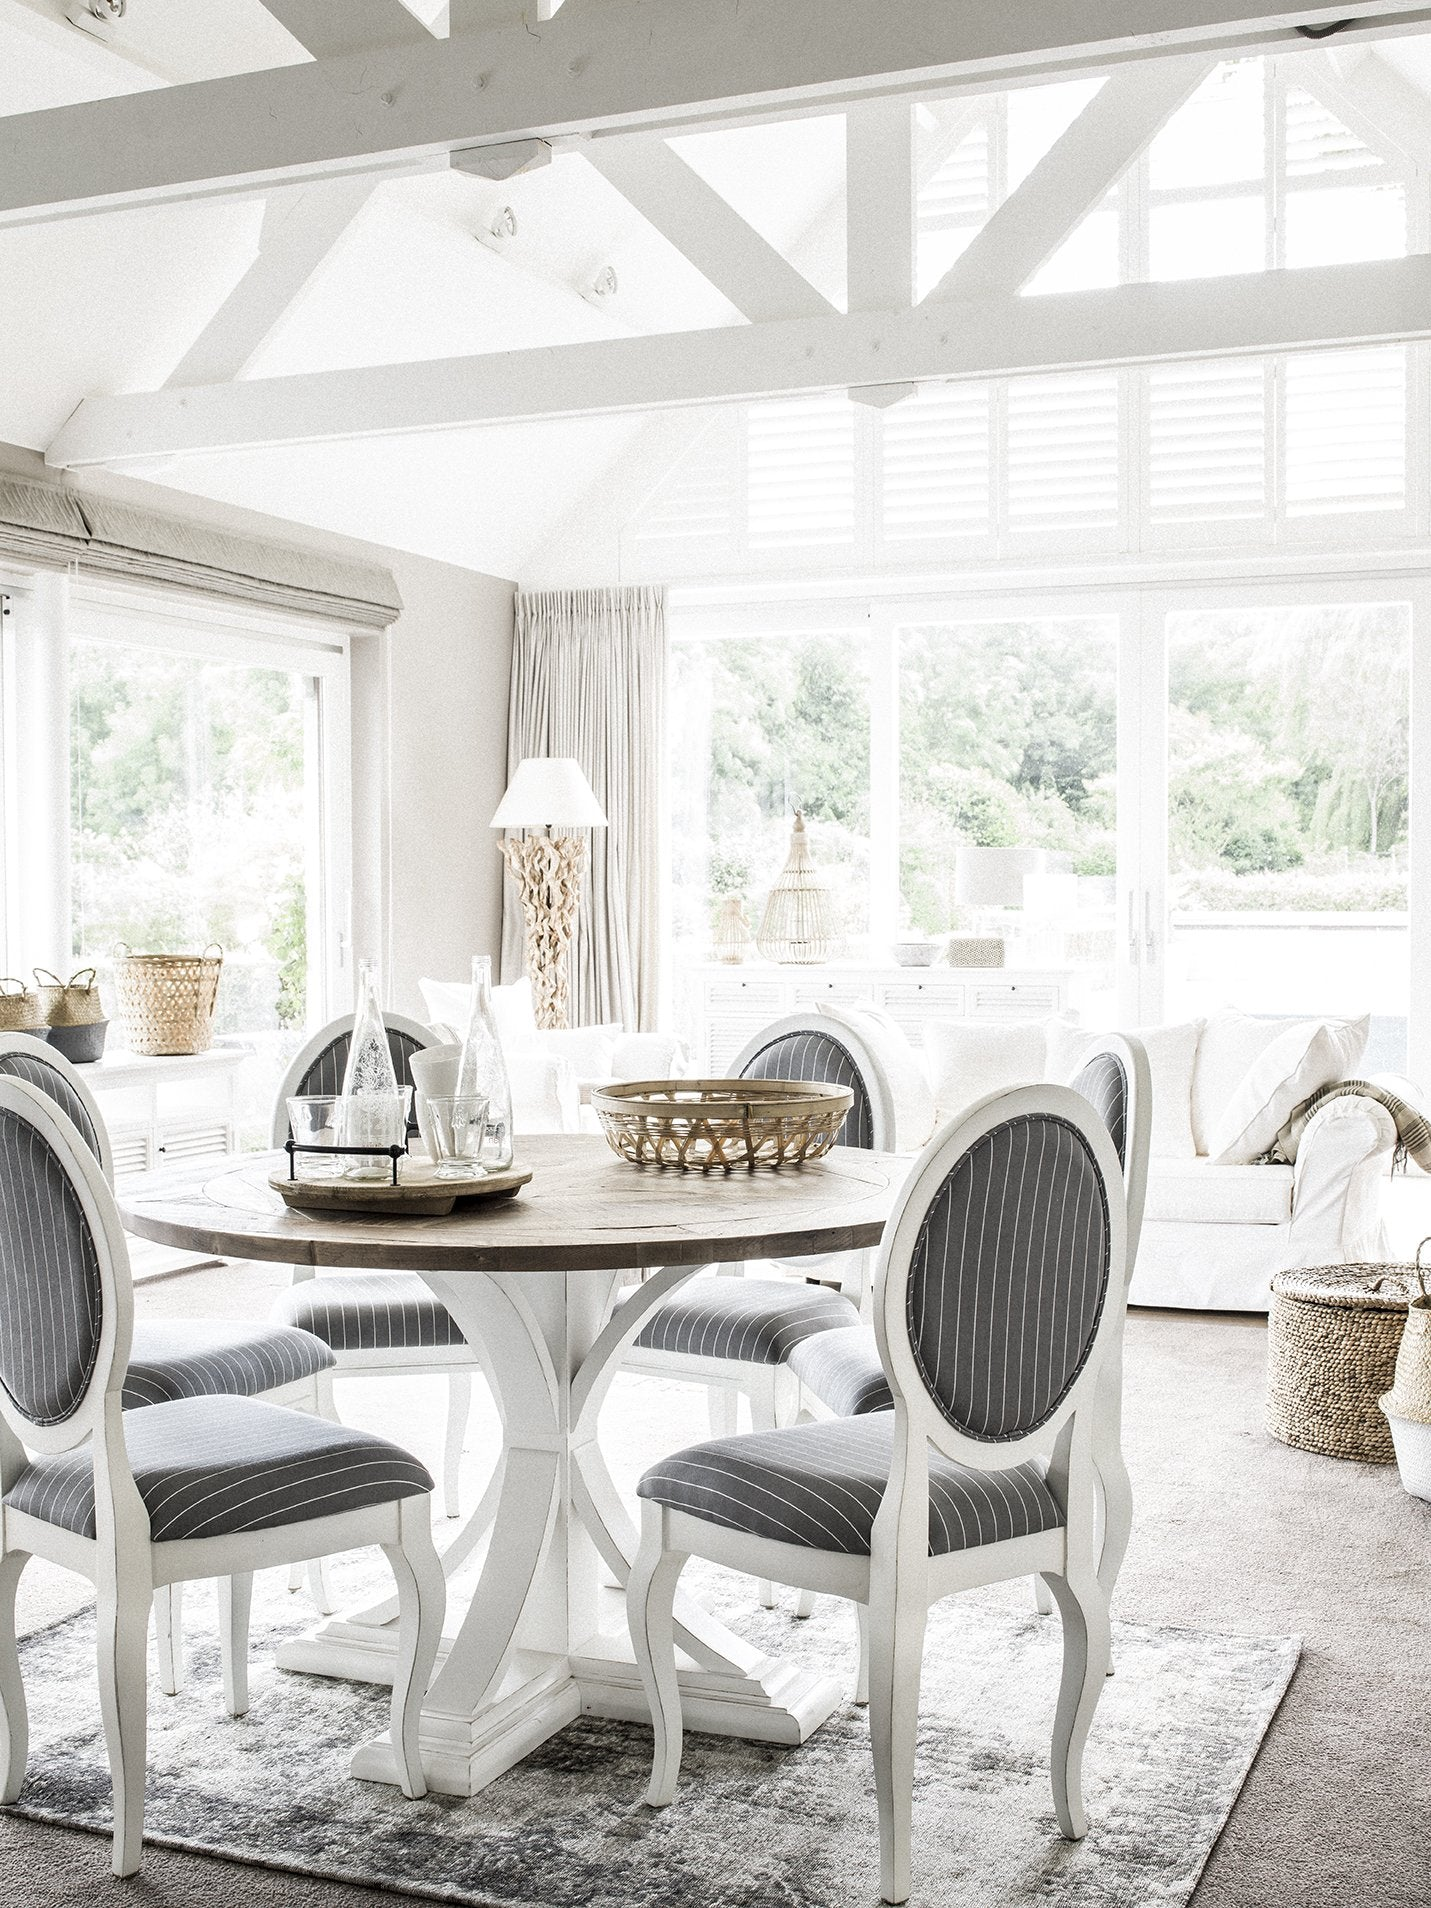 Picture of: Riviera Round Dining Table White Natural Wood The French Villa